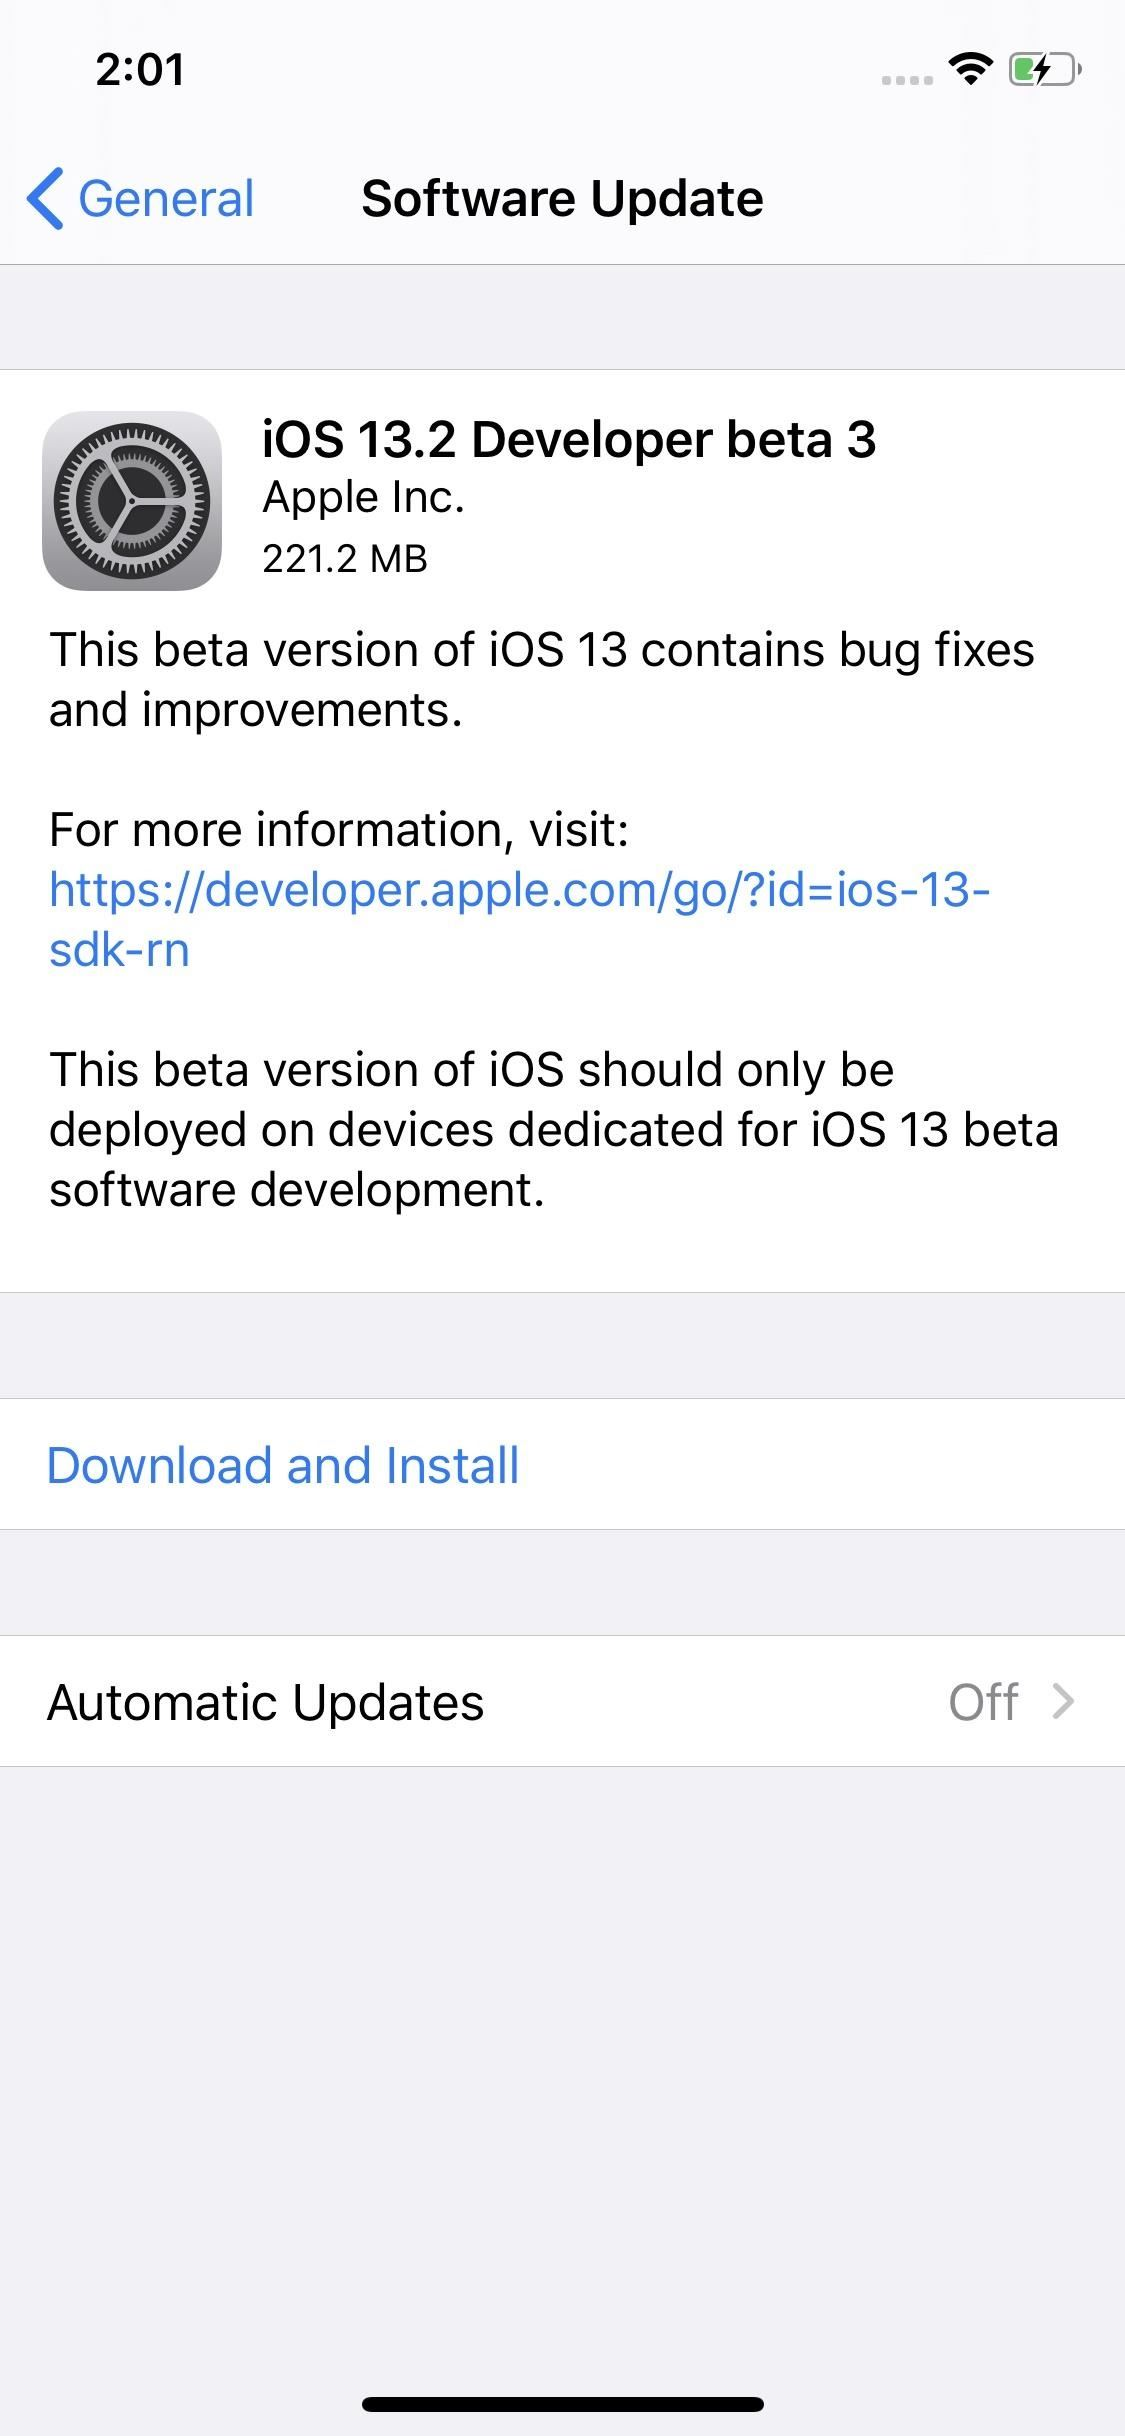 Apple Just Released iOS 13.2 Developer Beta 3 for iPhone